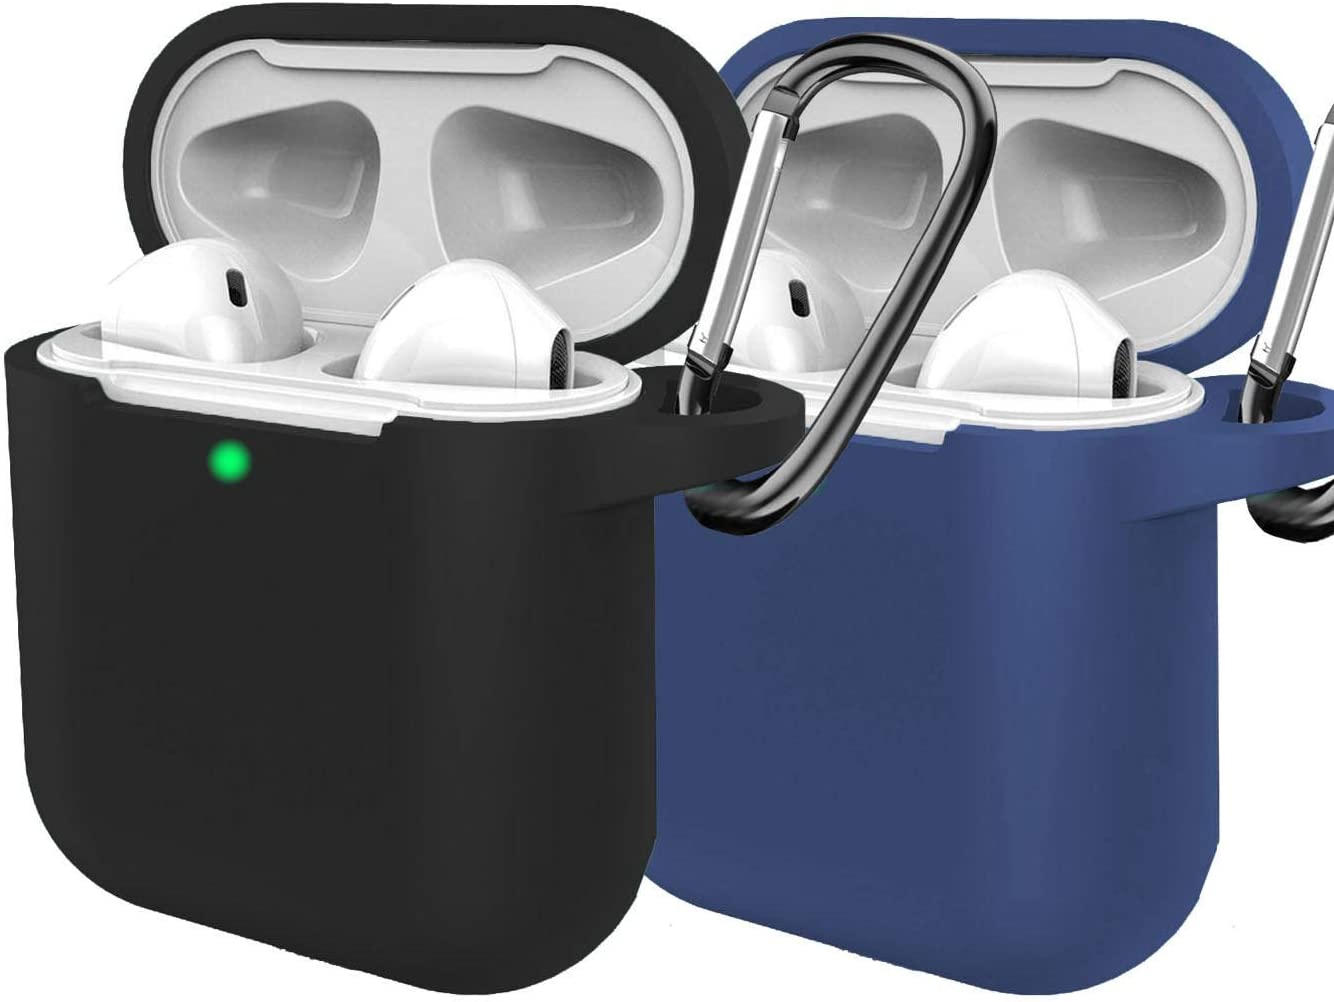 (2 Pack) Silicon Case Compatible AirPods 2&1 Case Cover, [Front LED Visible] with Anti-Lost Carabiner Compatible for Airpods Earbuds Wireless Charging Case for Apple AirPods 2 & 1 (Black+Dark Blue)